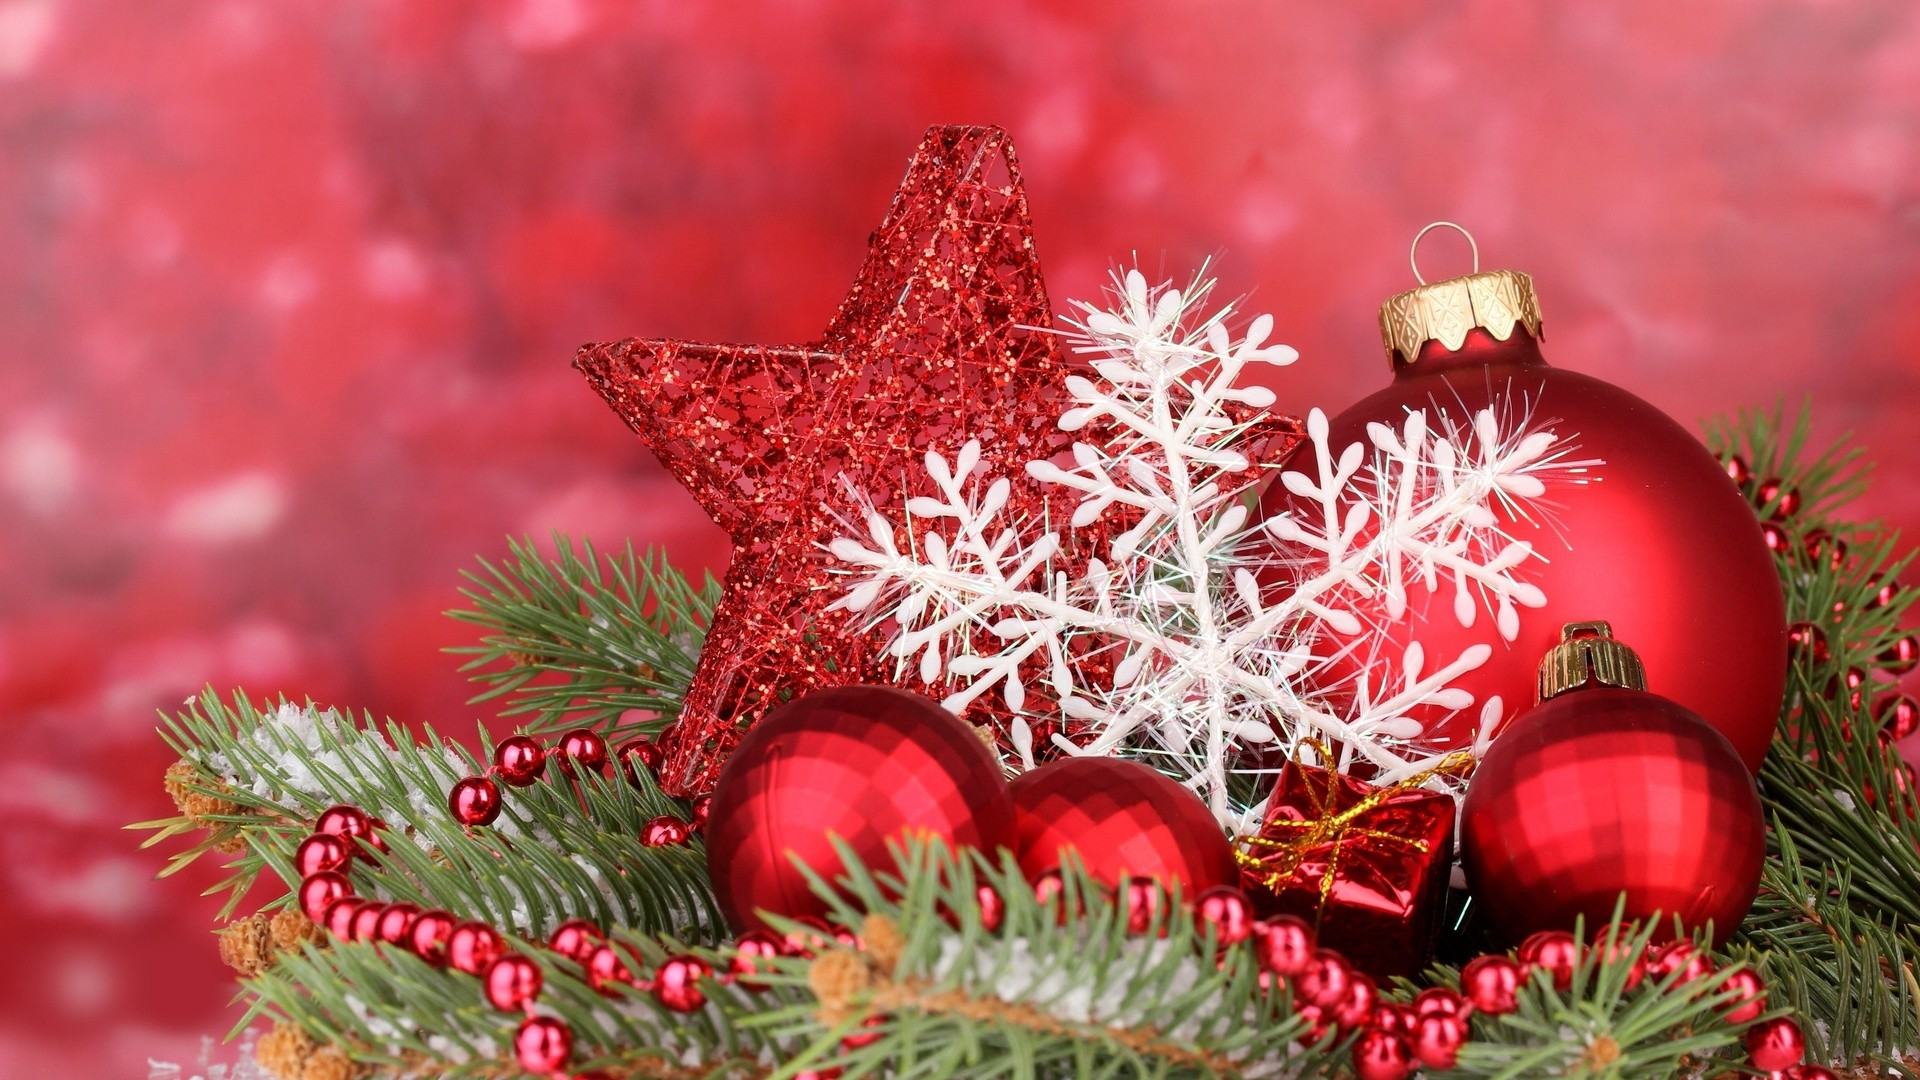 Christmas Desktop Wallpaper Free 1600x900 Download Hd Wallpaper Wallpapertip